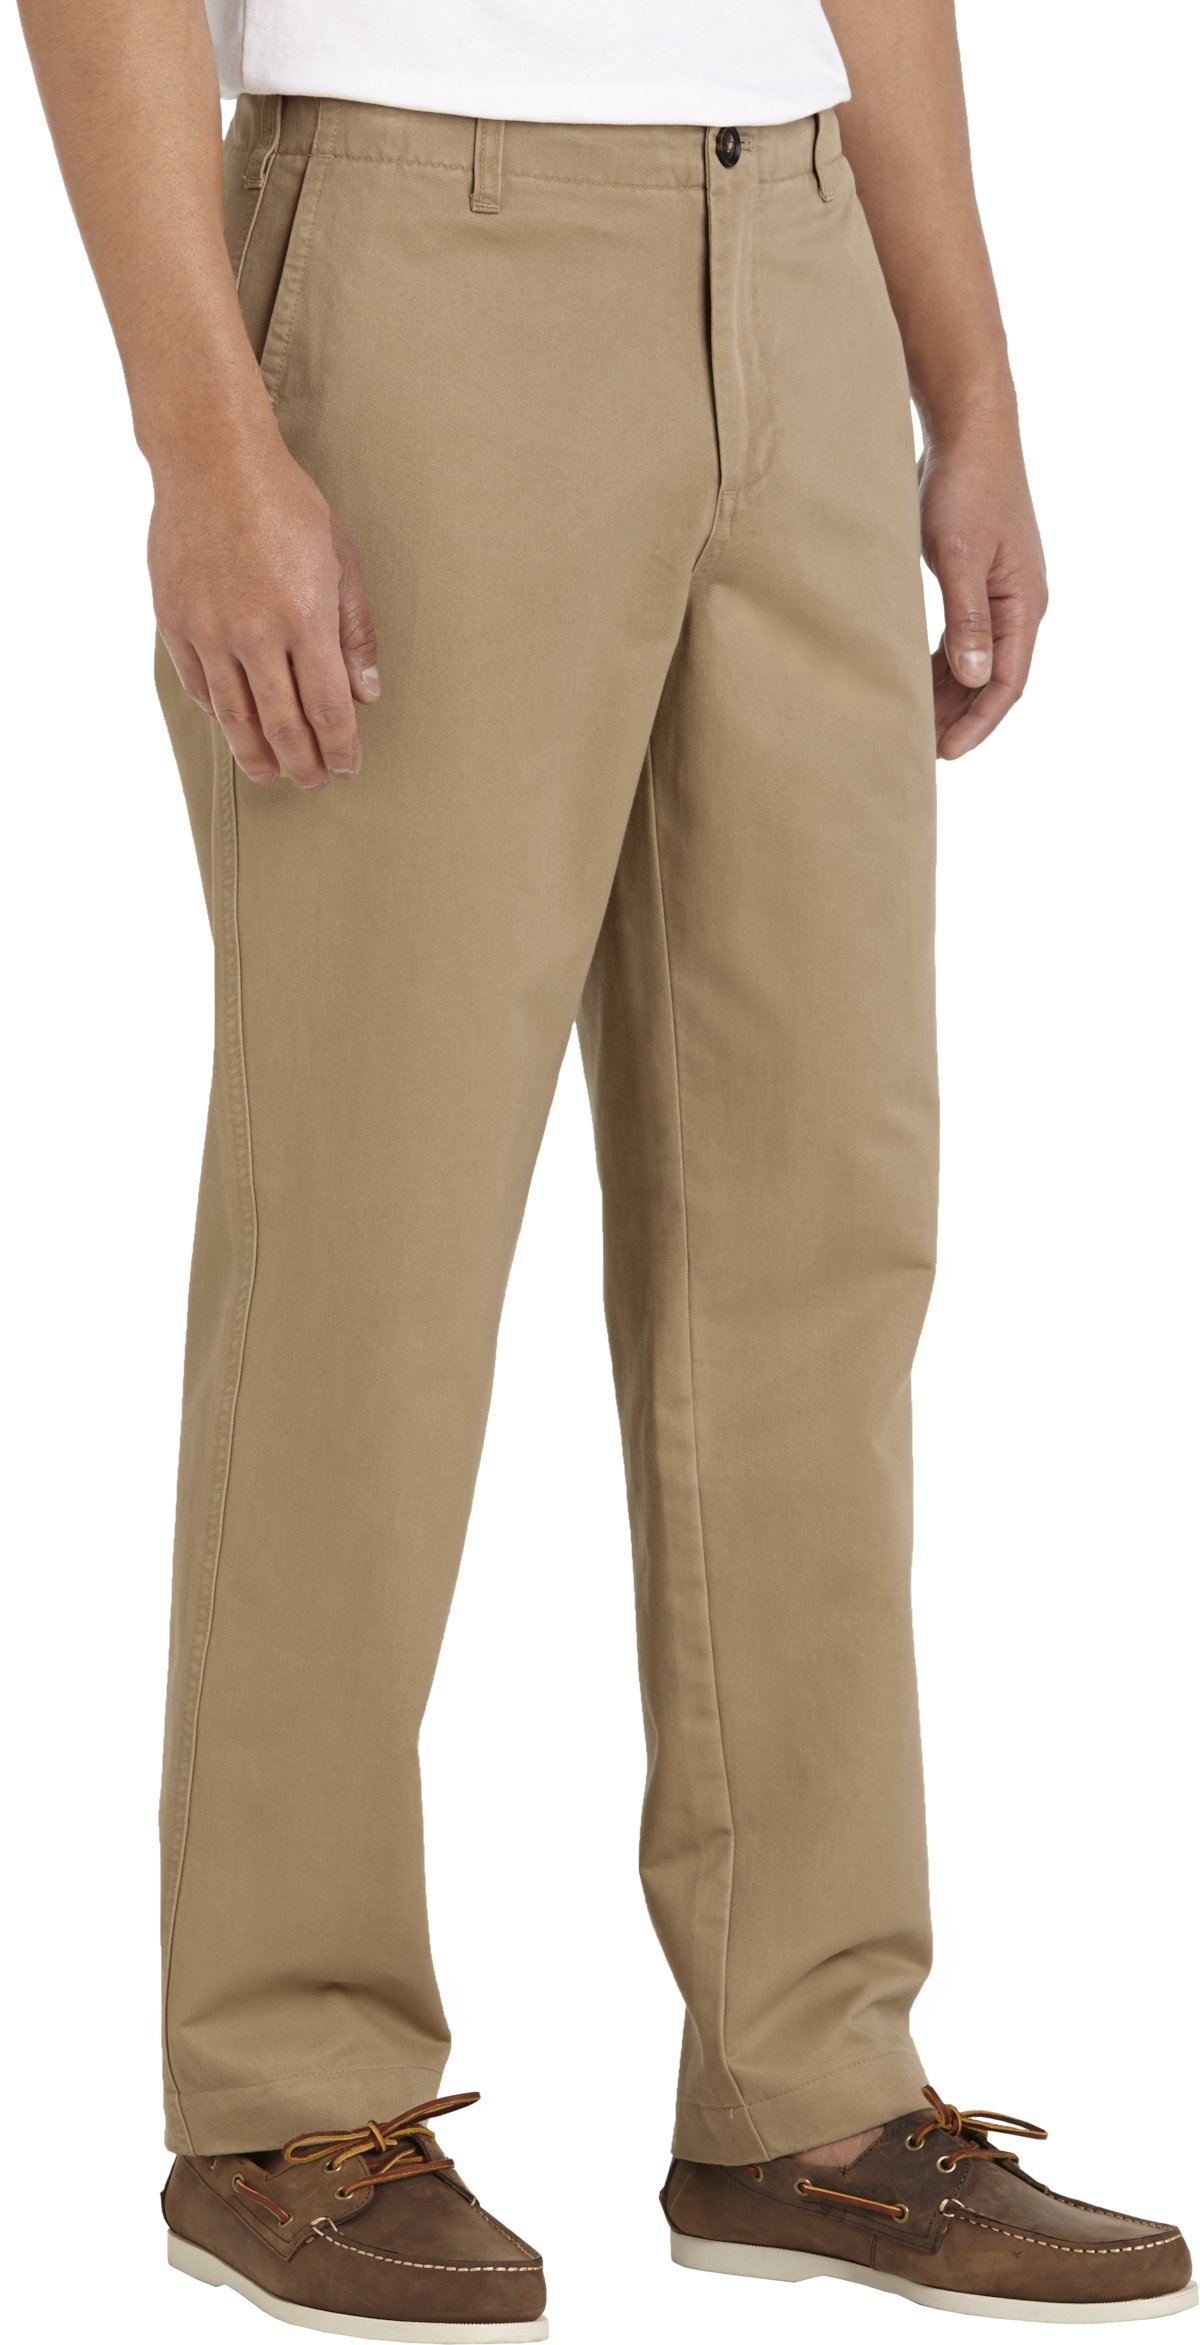 Dress to impress with Women's Dress Pants from Kohl's. Women's Career Pants are essential for your formal wardrobe. Kohl's offers many different styles and types of women's pants, like plus size dress pants, women's petite dress pants, and women's straight leg career pants.